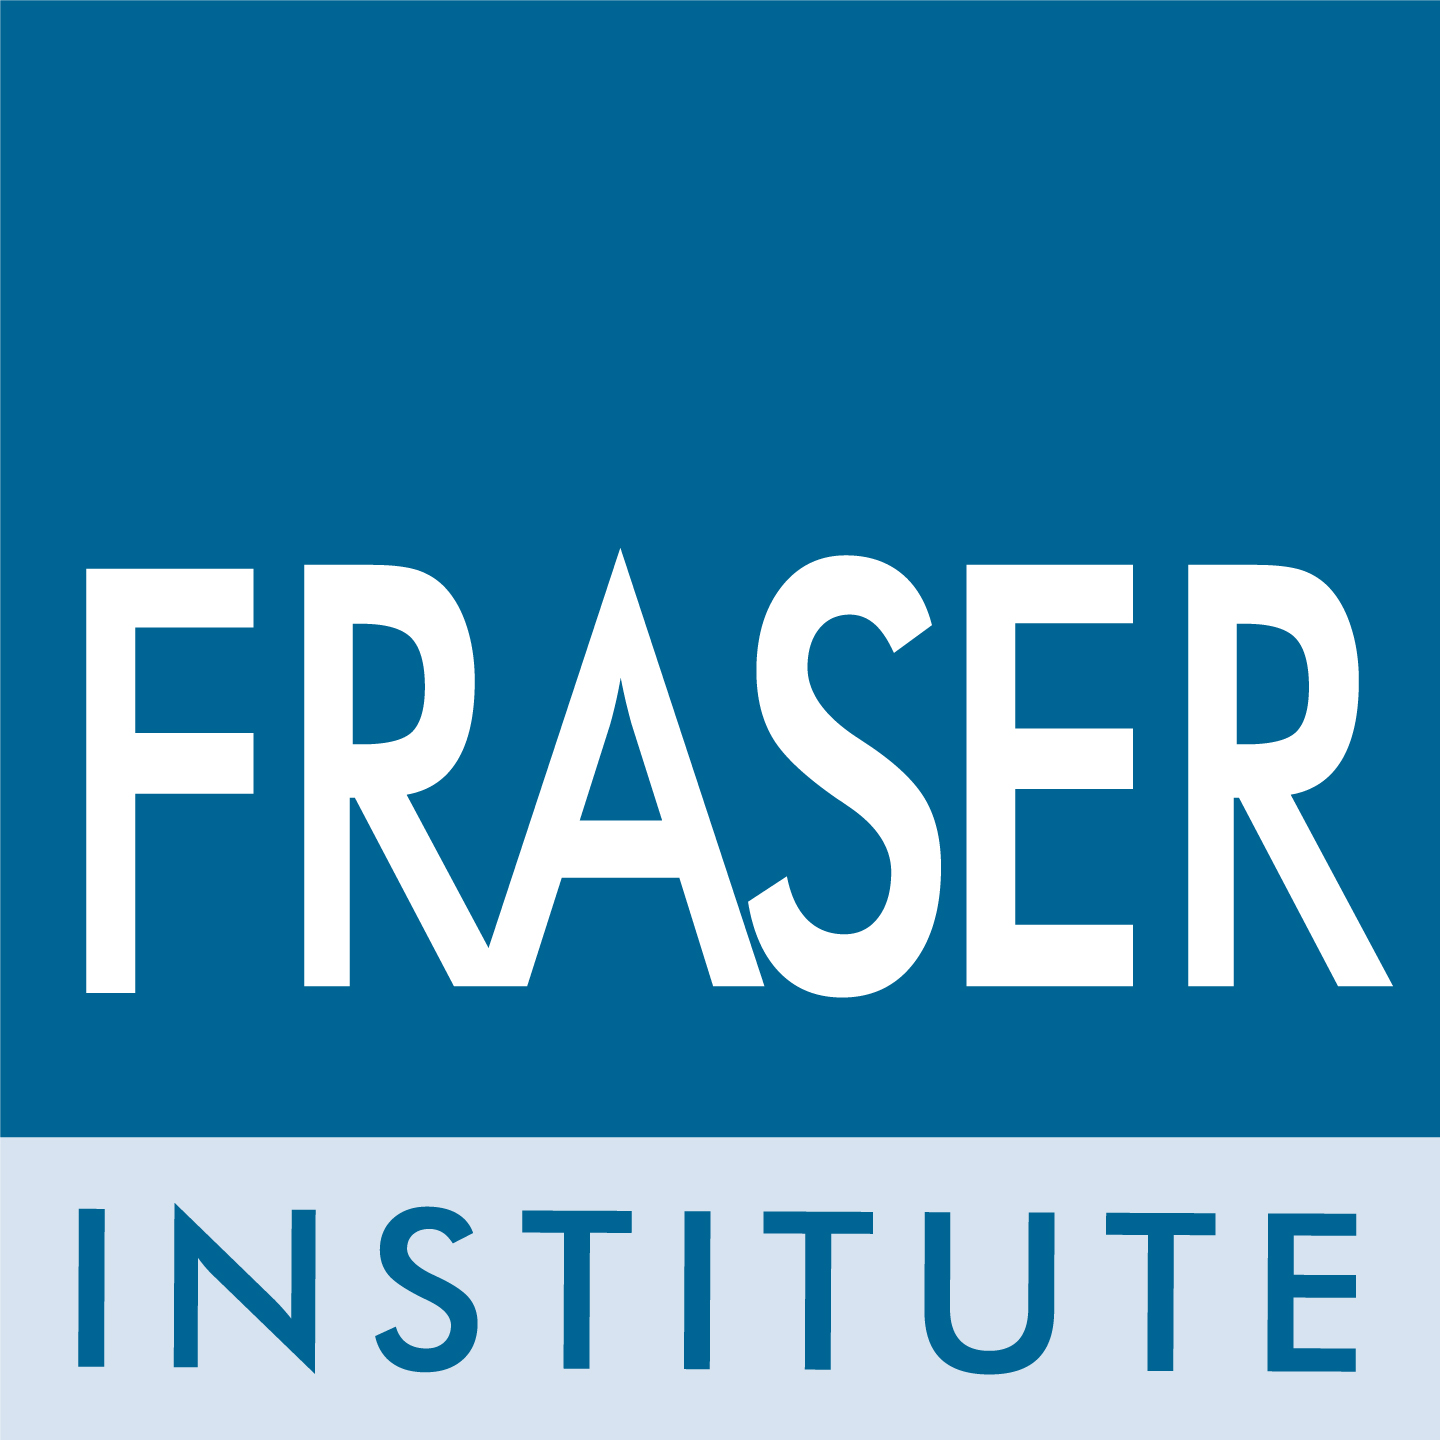 Fraser Institute Media Advisory: New study on health care coming Tuesday, Jan